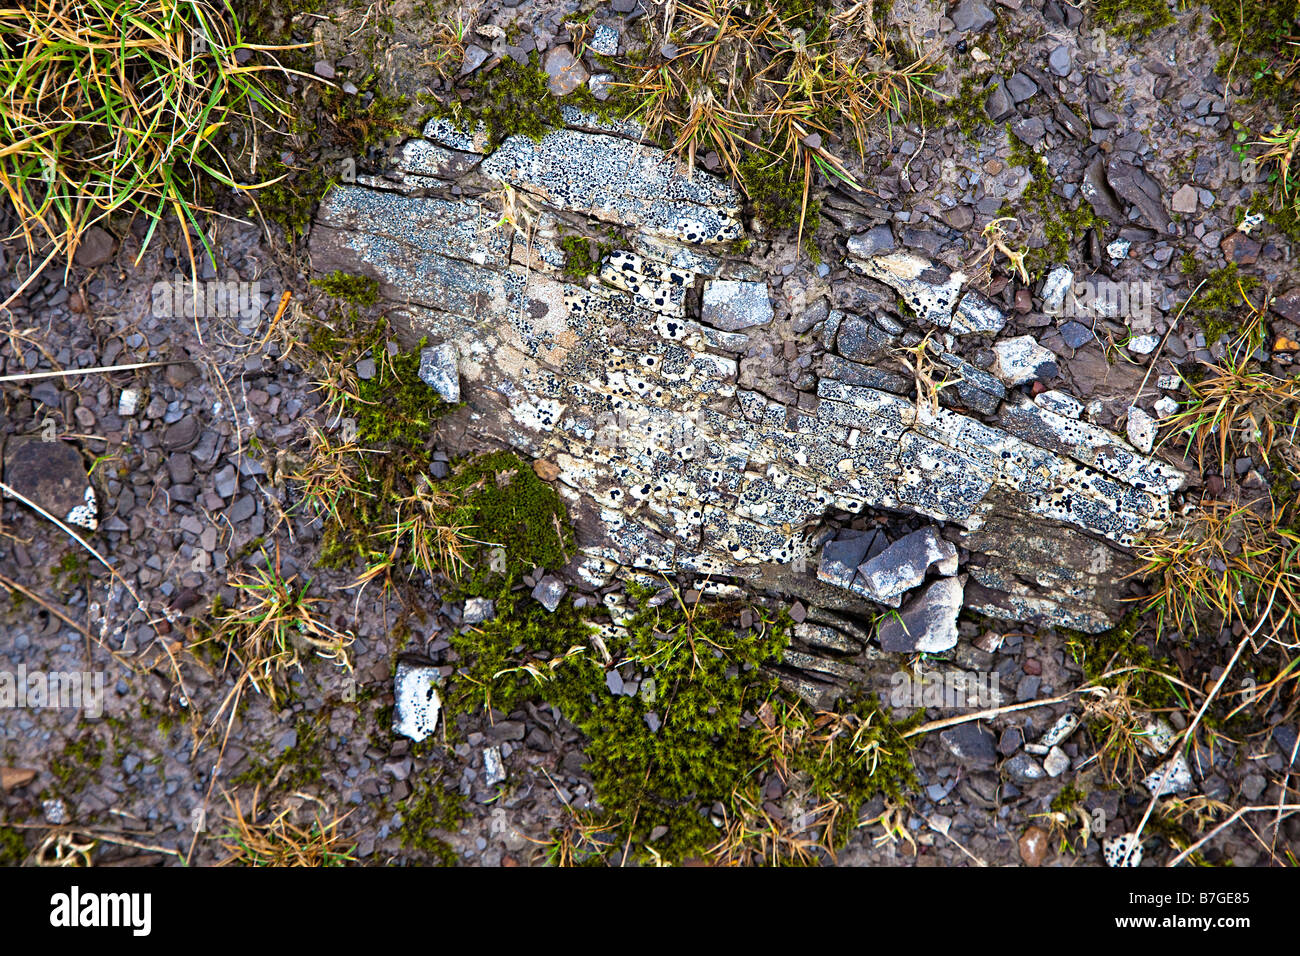 Pattern of lichens on stone with moss on upland track Gilwern HillWales UK - Stock Image